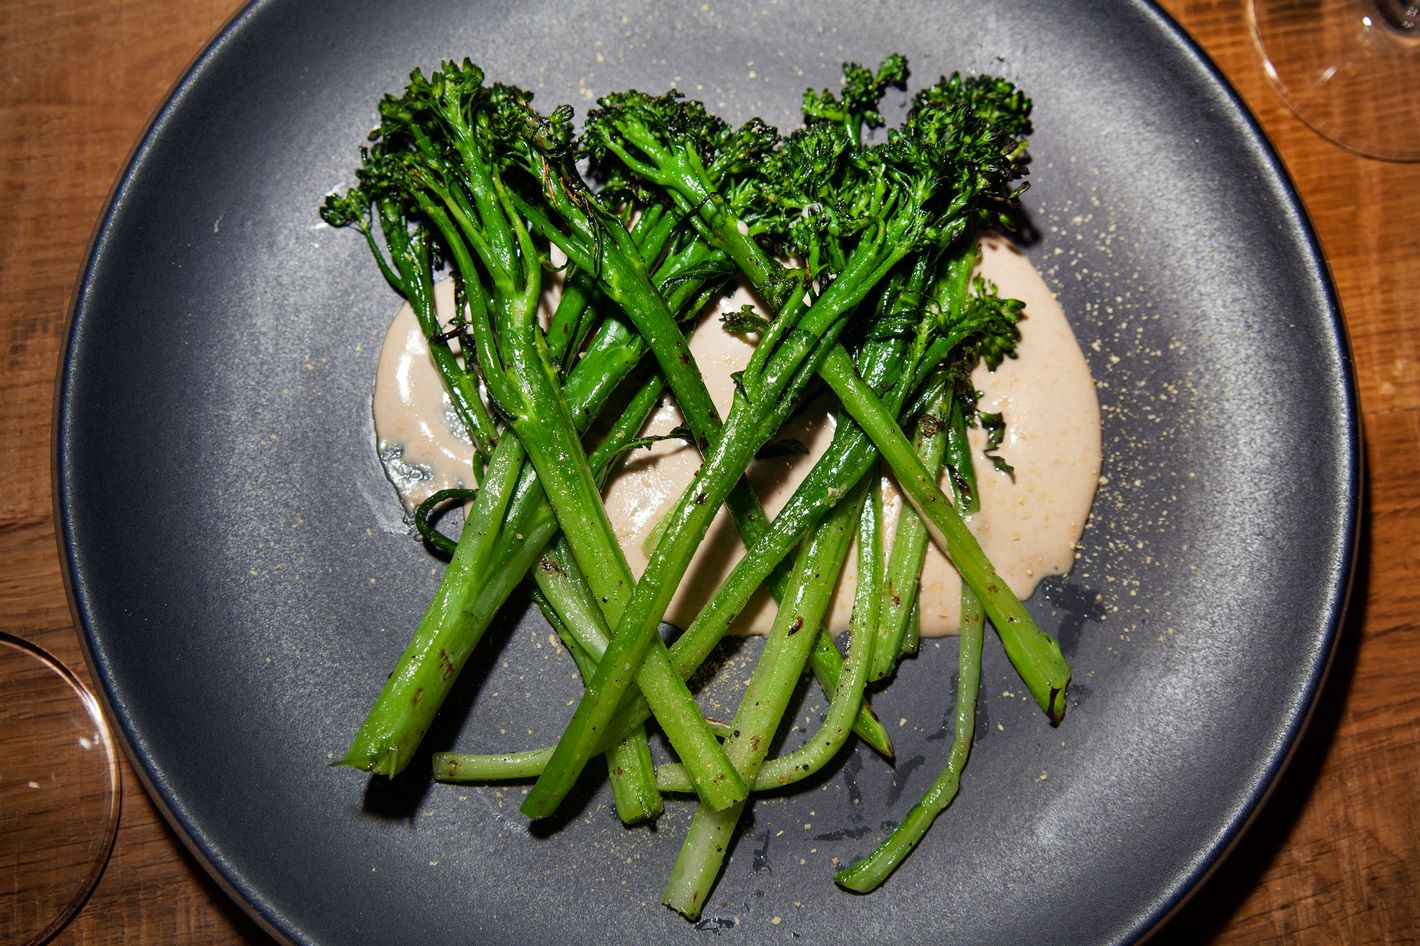 Charred broccolini tonnato gets dusted with nutritional yeast.